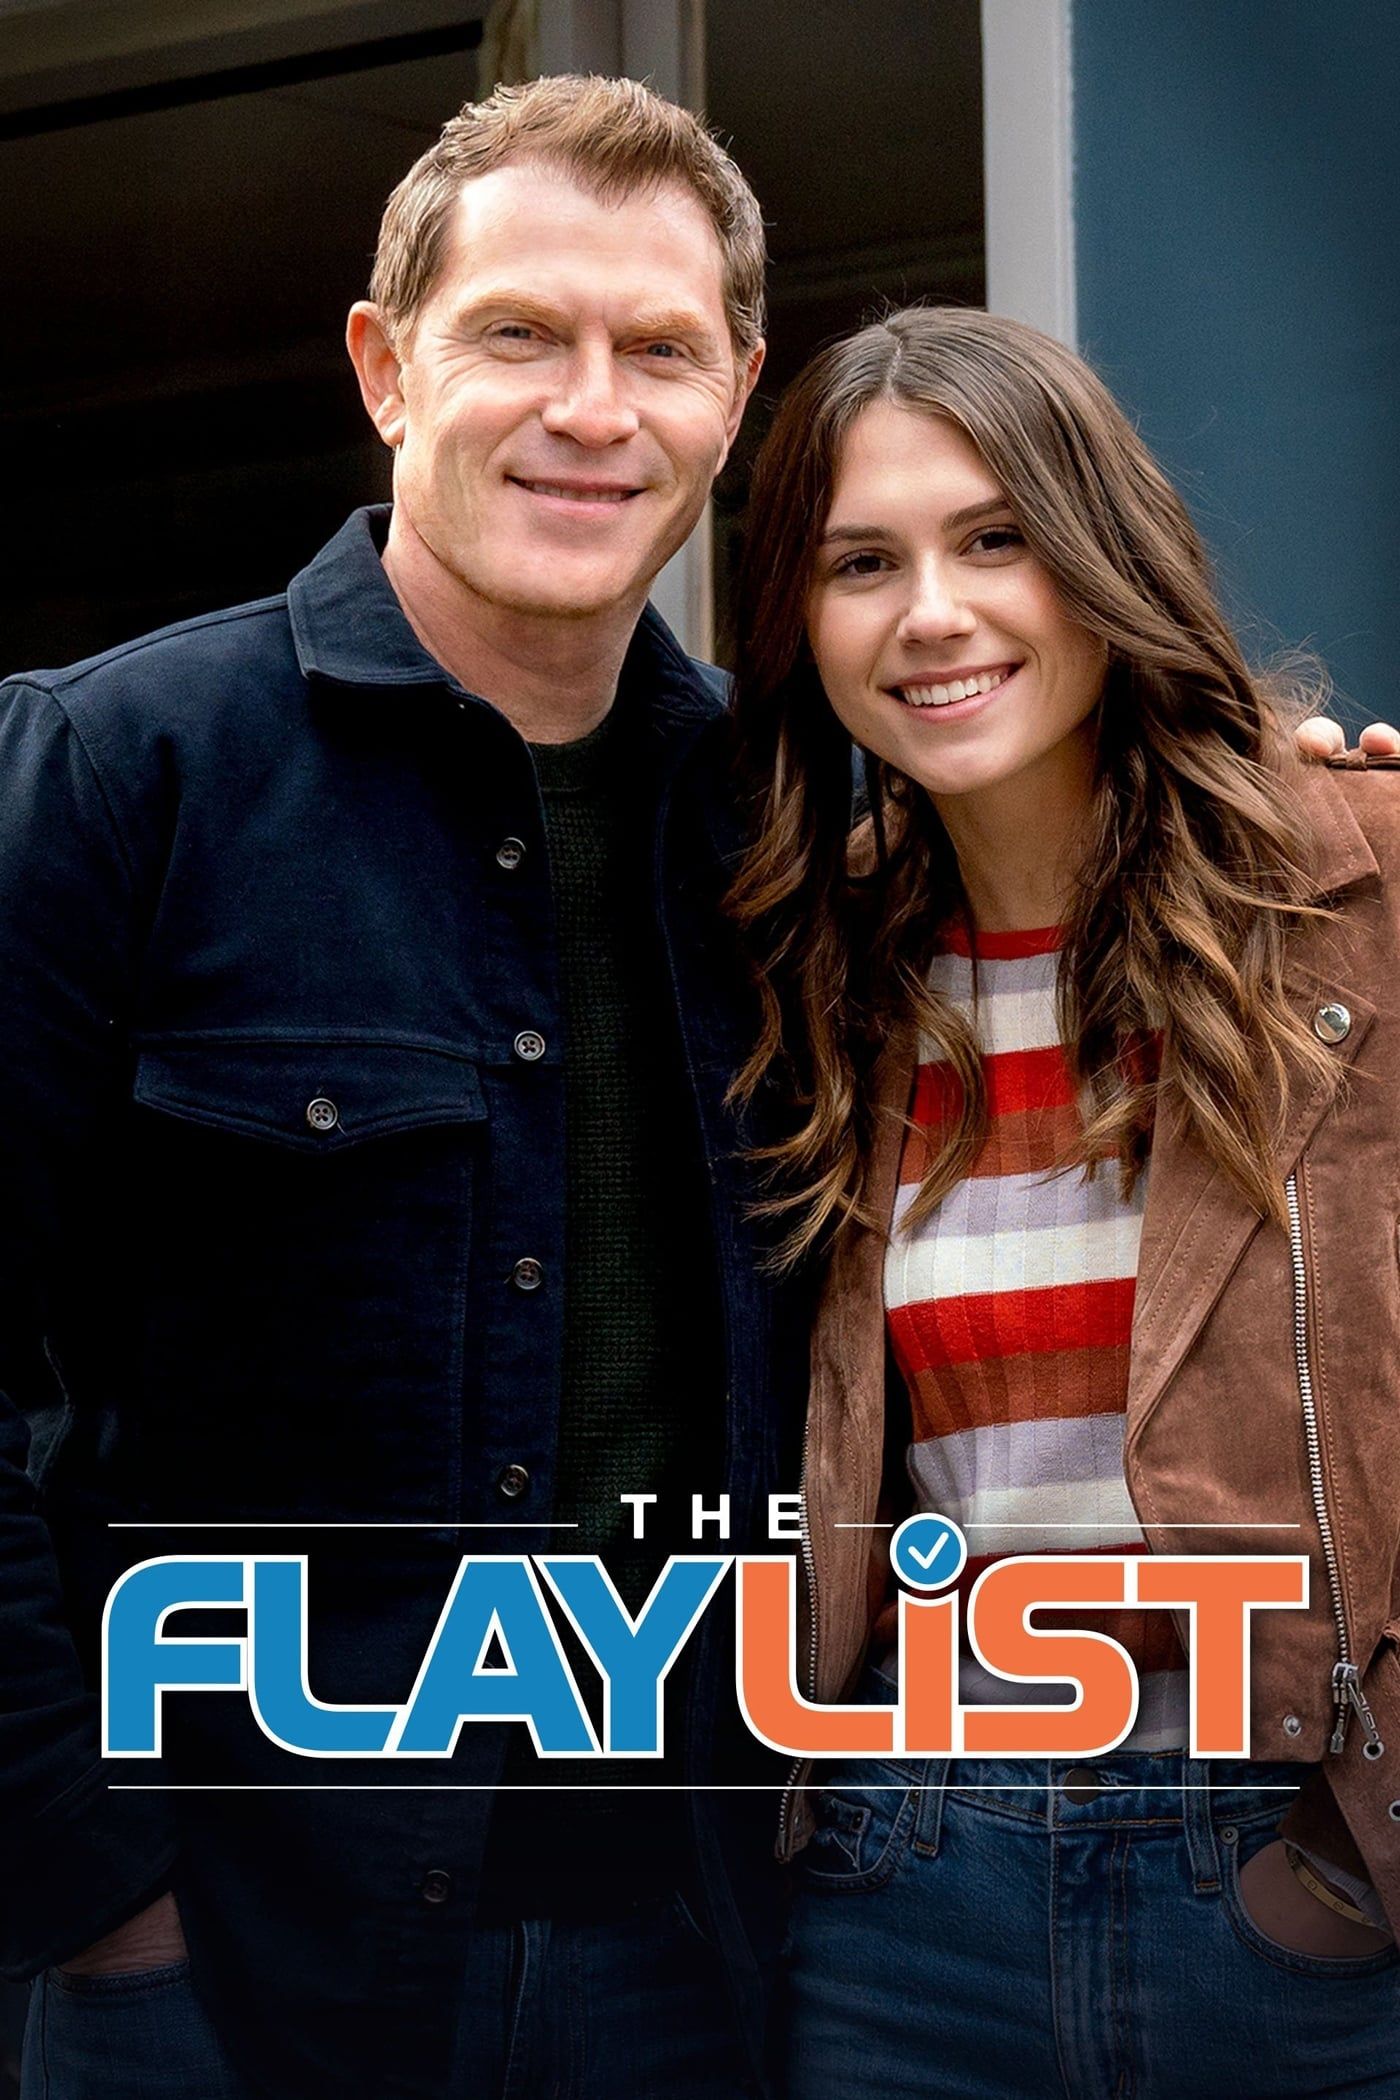 The Flay List (2019)